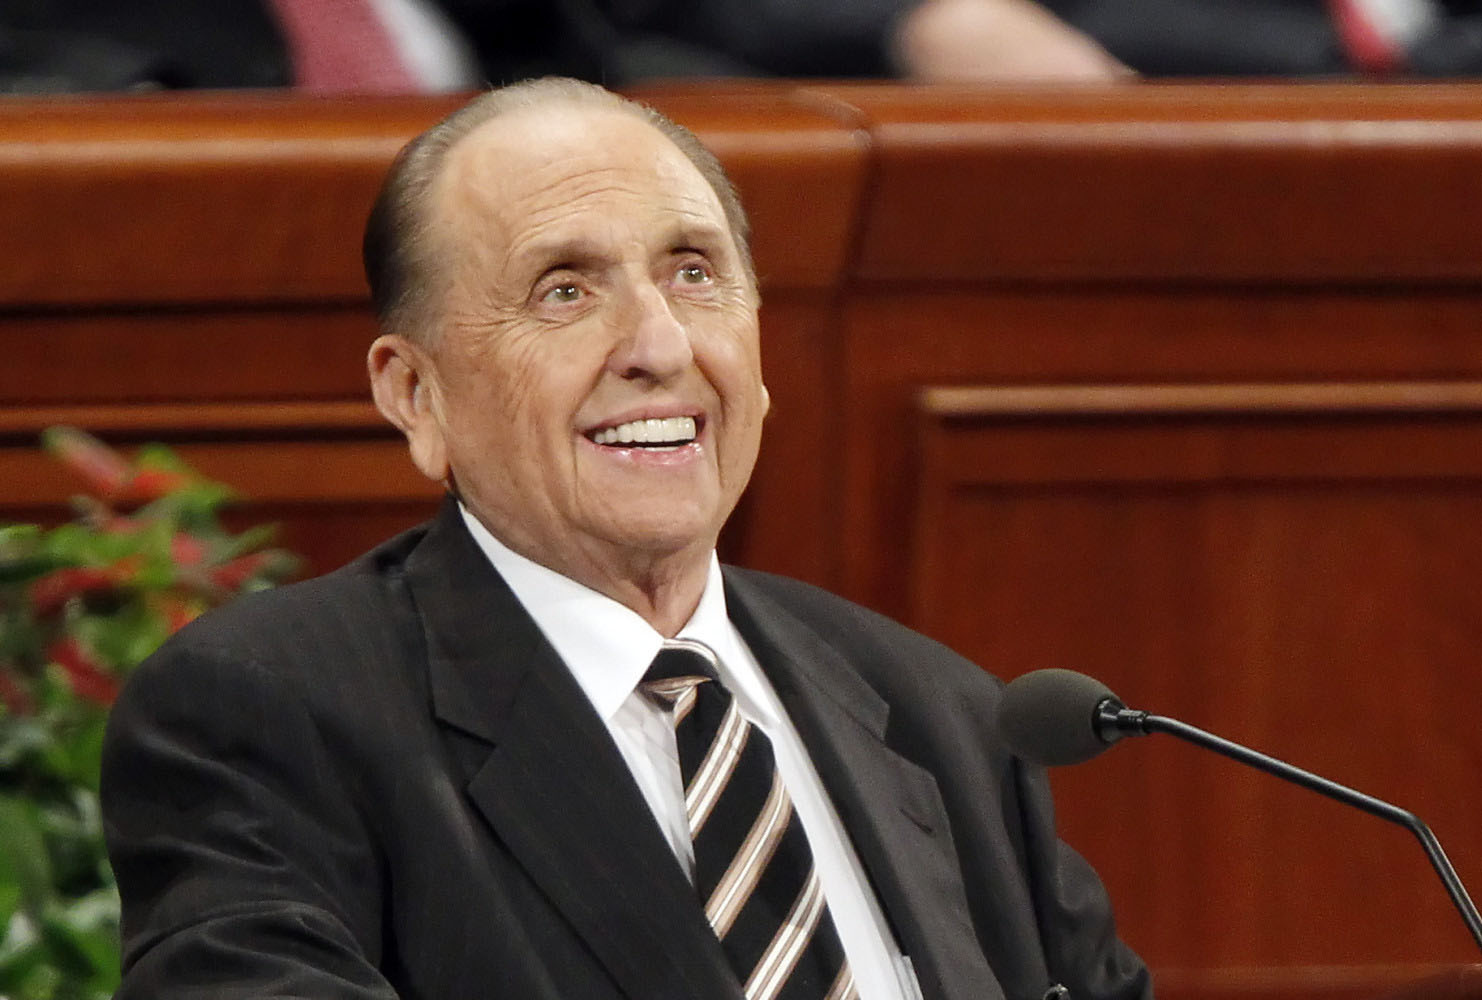 President of the Church of Jesus Christ of Latter-day Saints, Thomas Monson gives a talk during the first session of the 181st Semiannual General Conference October 1, 2011 in Salt Lake City, Utah.